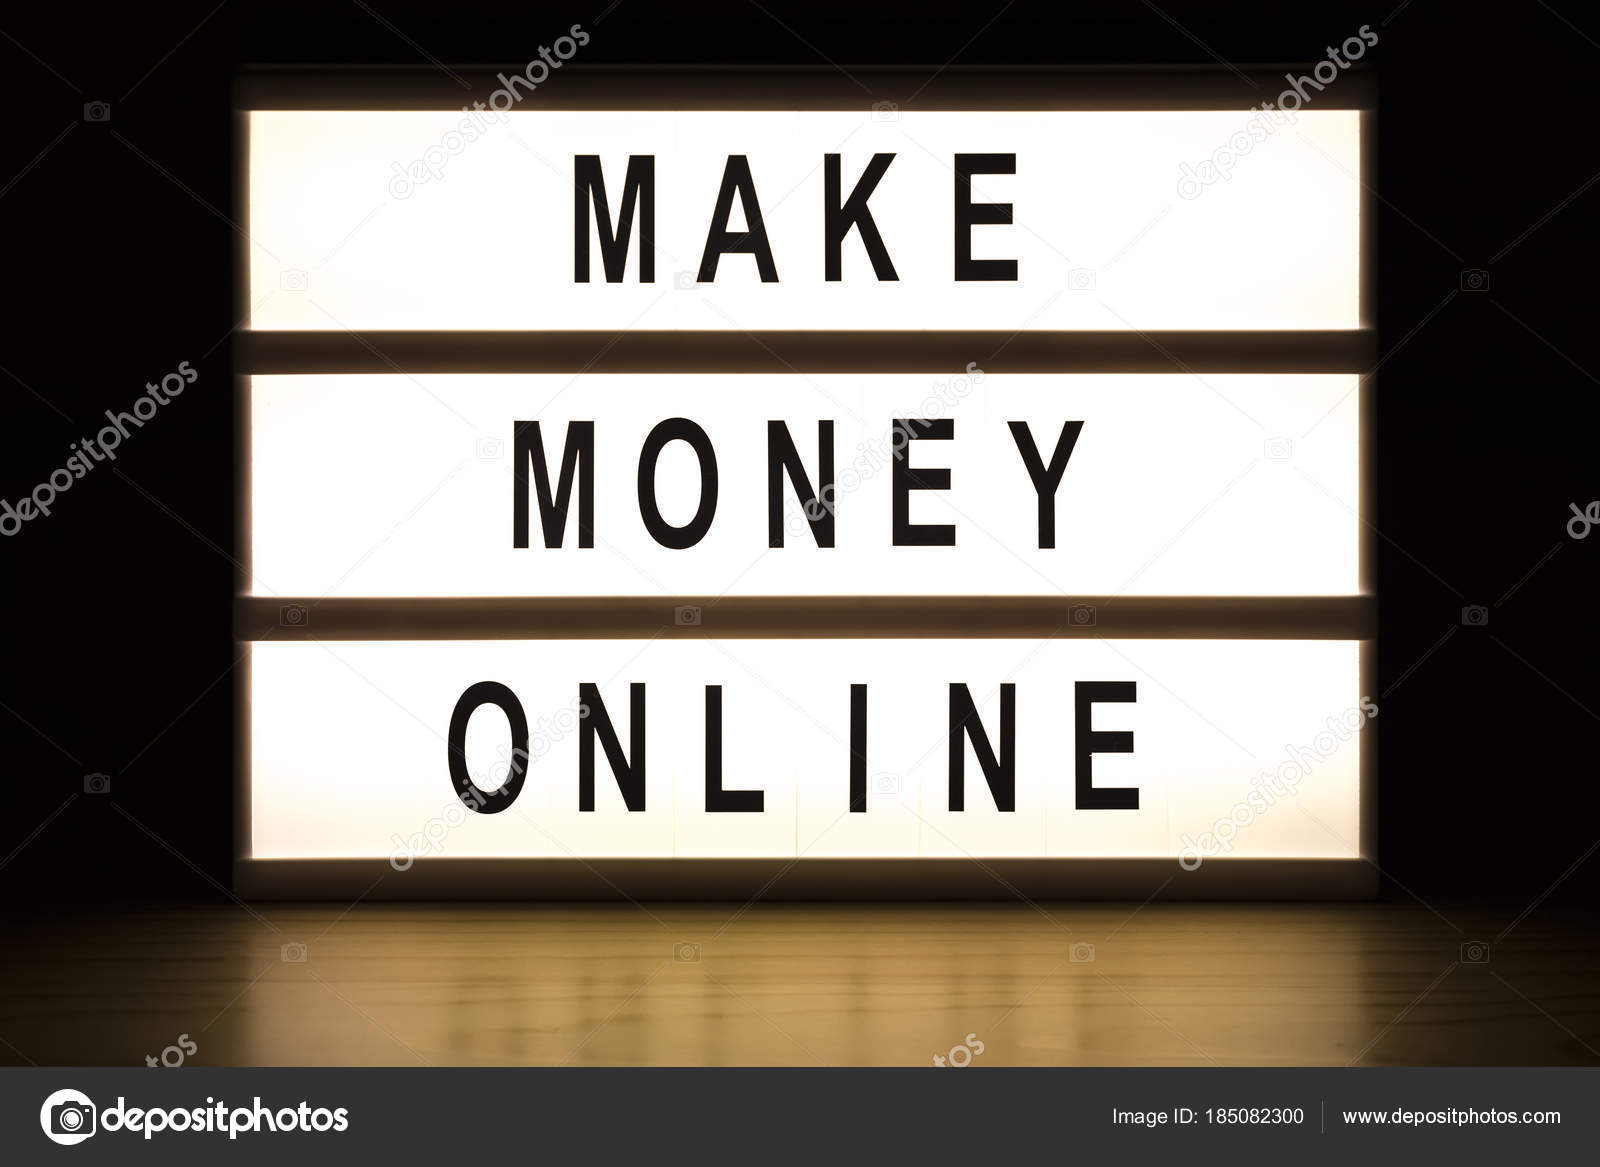 Make money online light box sign board — Stock Photo © kataklinger